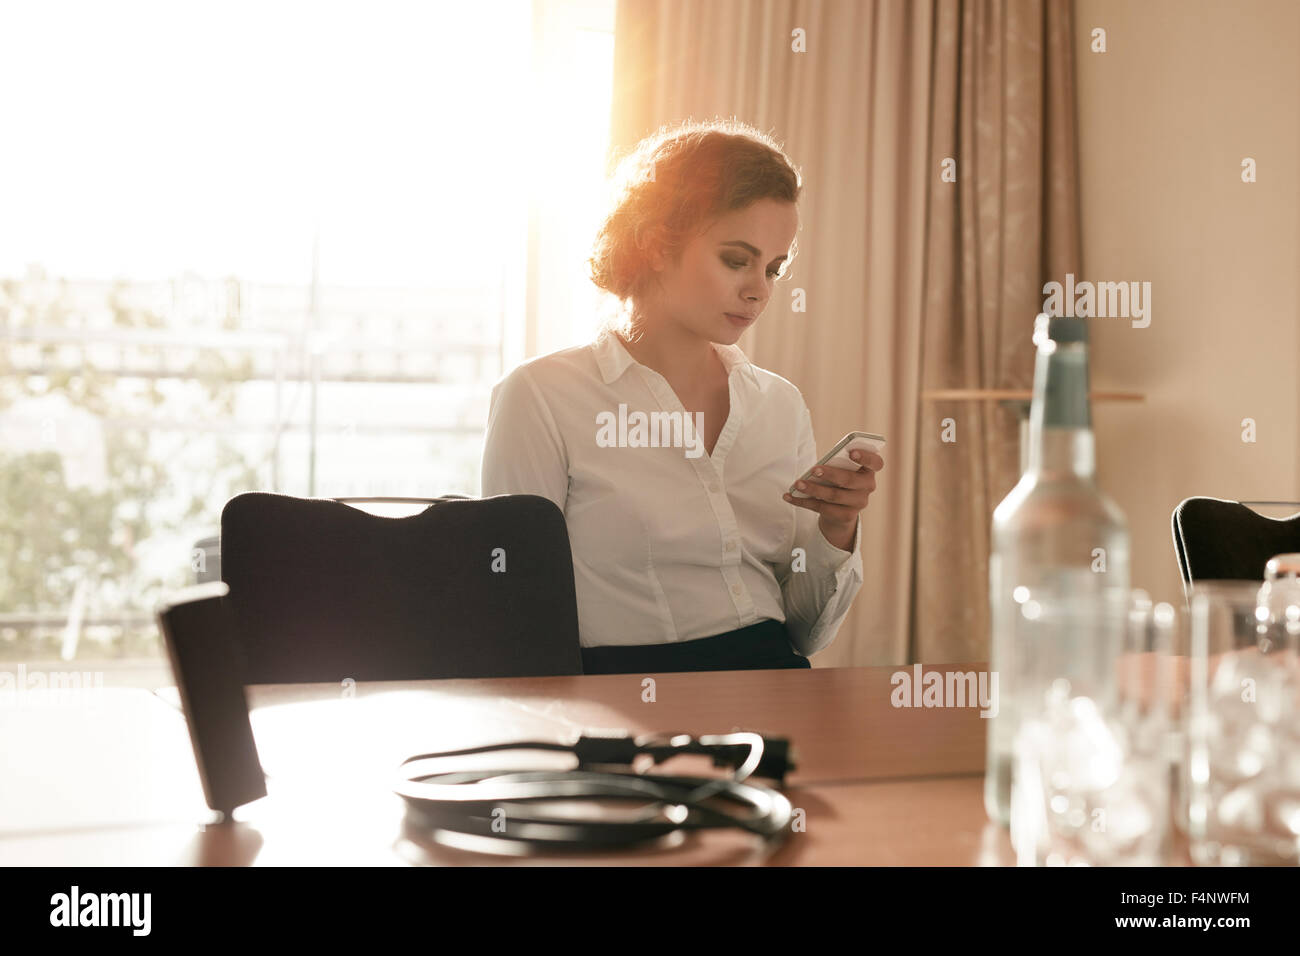 Image of businesswoman at conference table reading text message on her mobile phone. Caucasian female executive - Stock Image